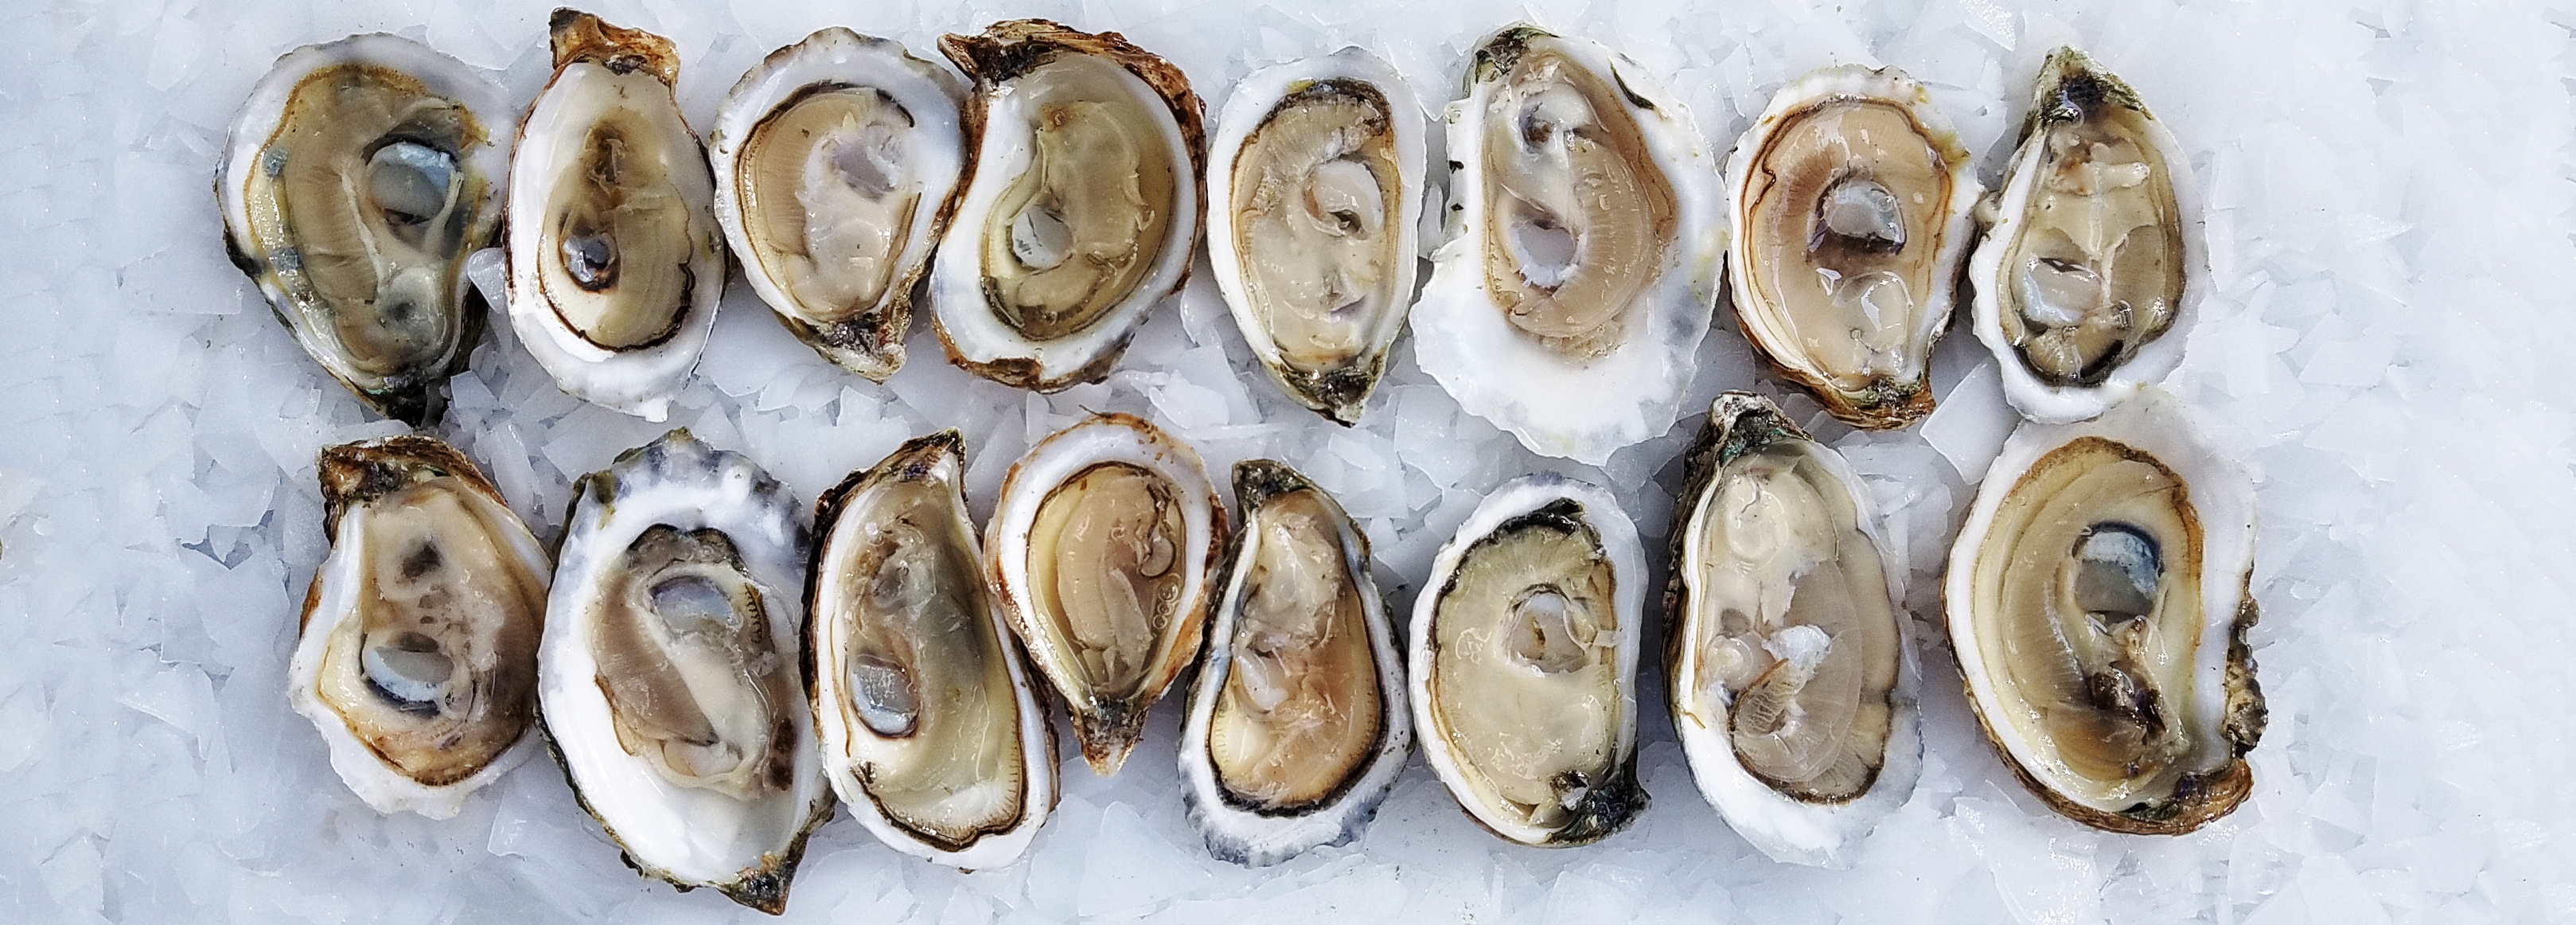 A No-Nonsense Guide to East Coast Oysters